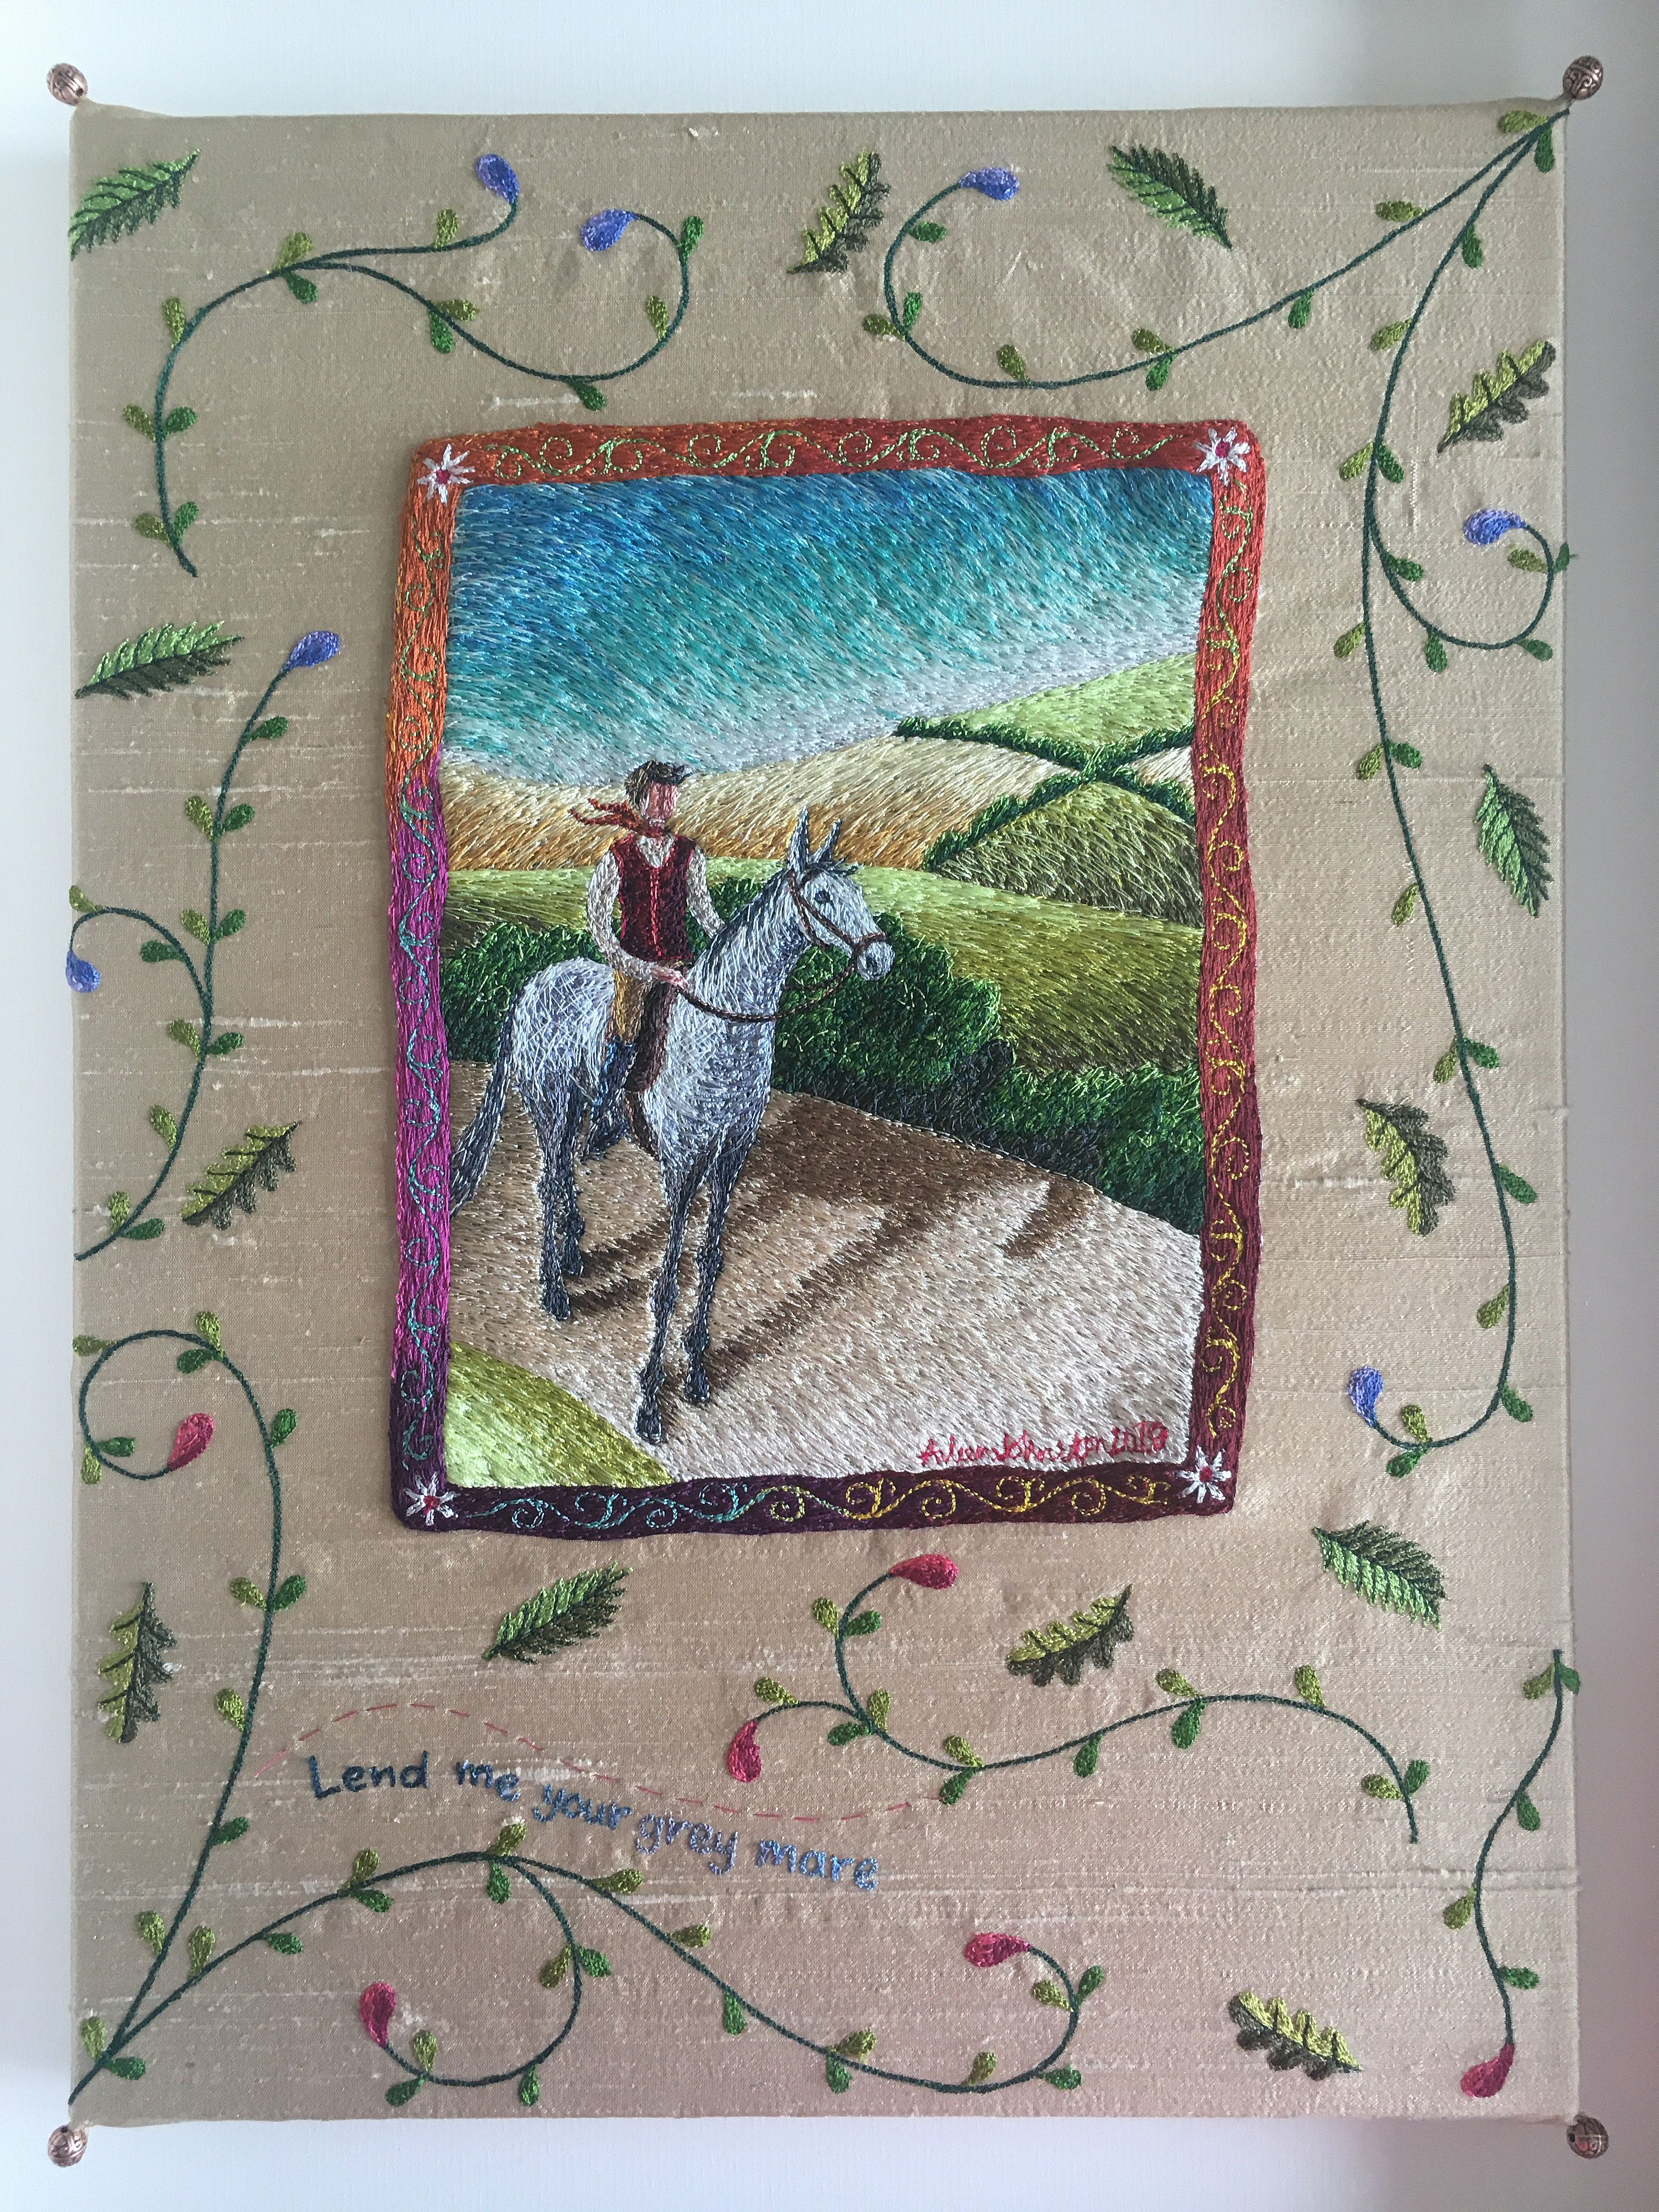 Lend me your grey Mare by Aileen  Johnston